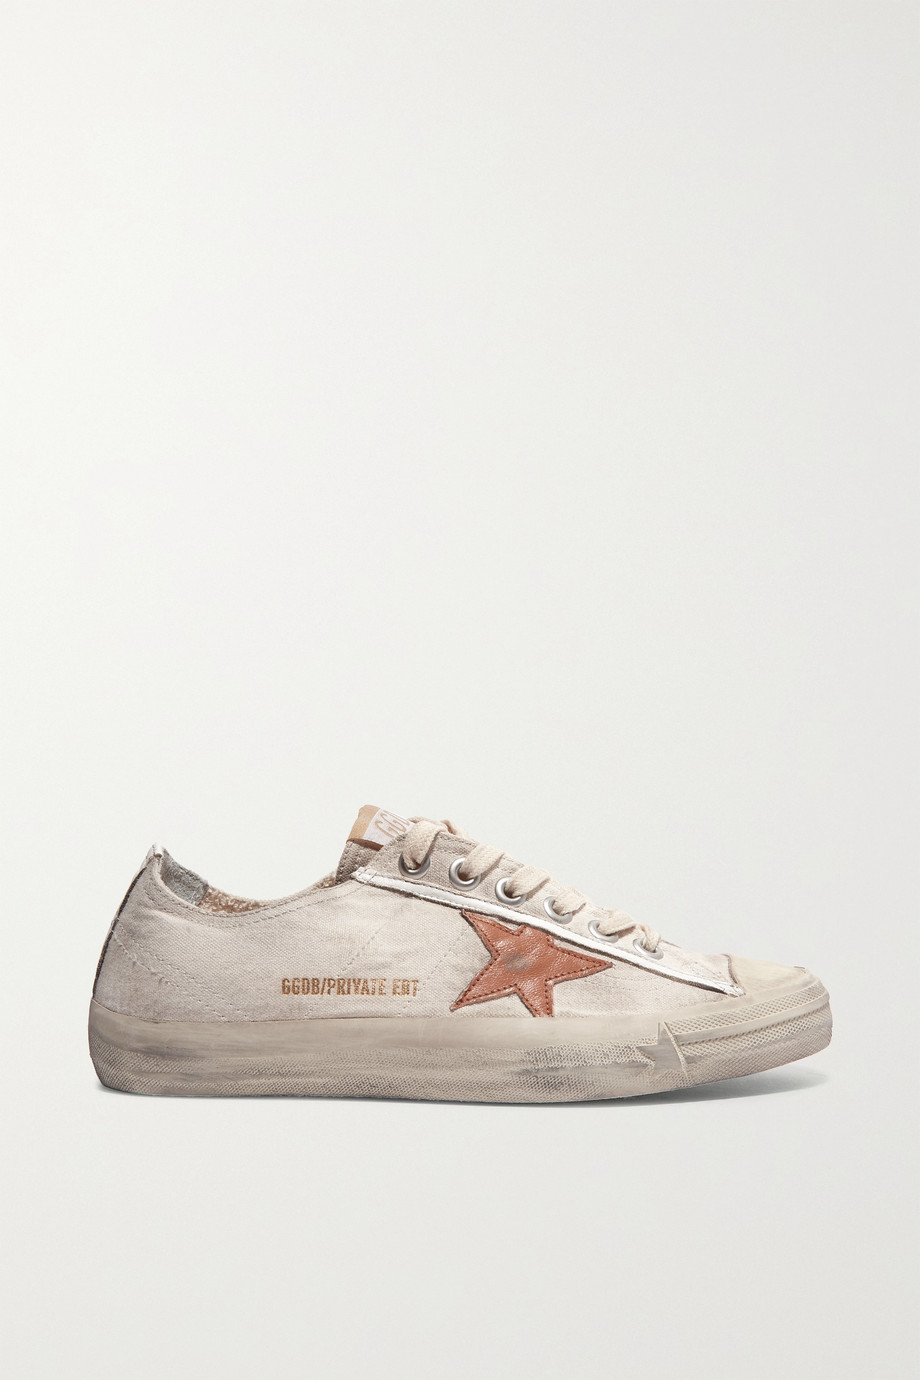 Golden Goose Distressed recycled canvas and leather sneakers